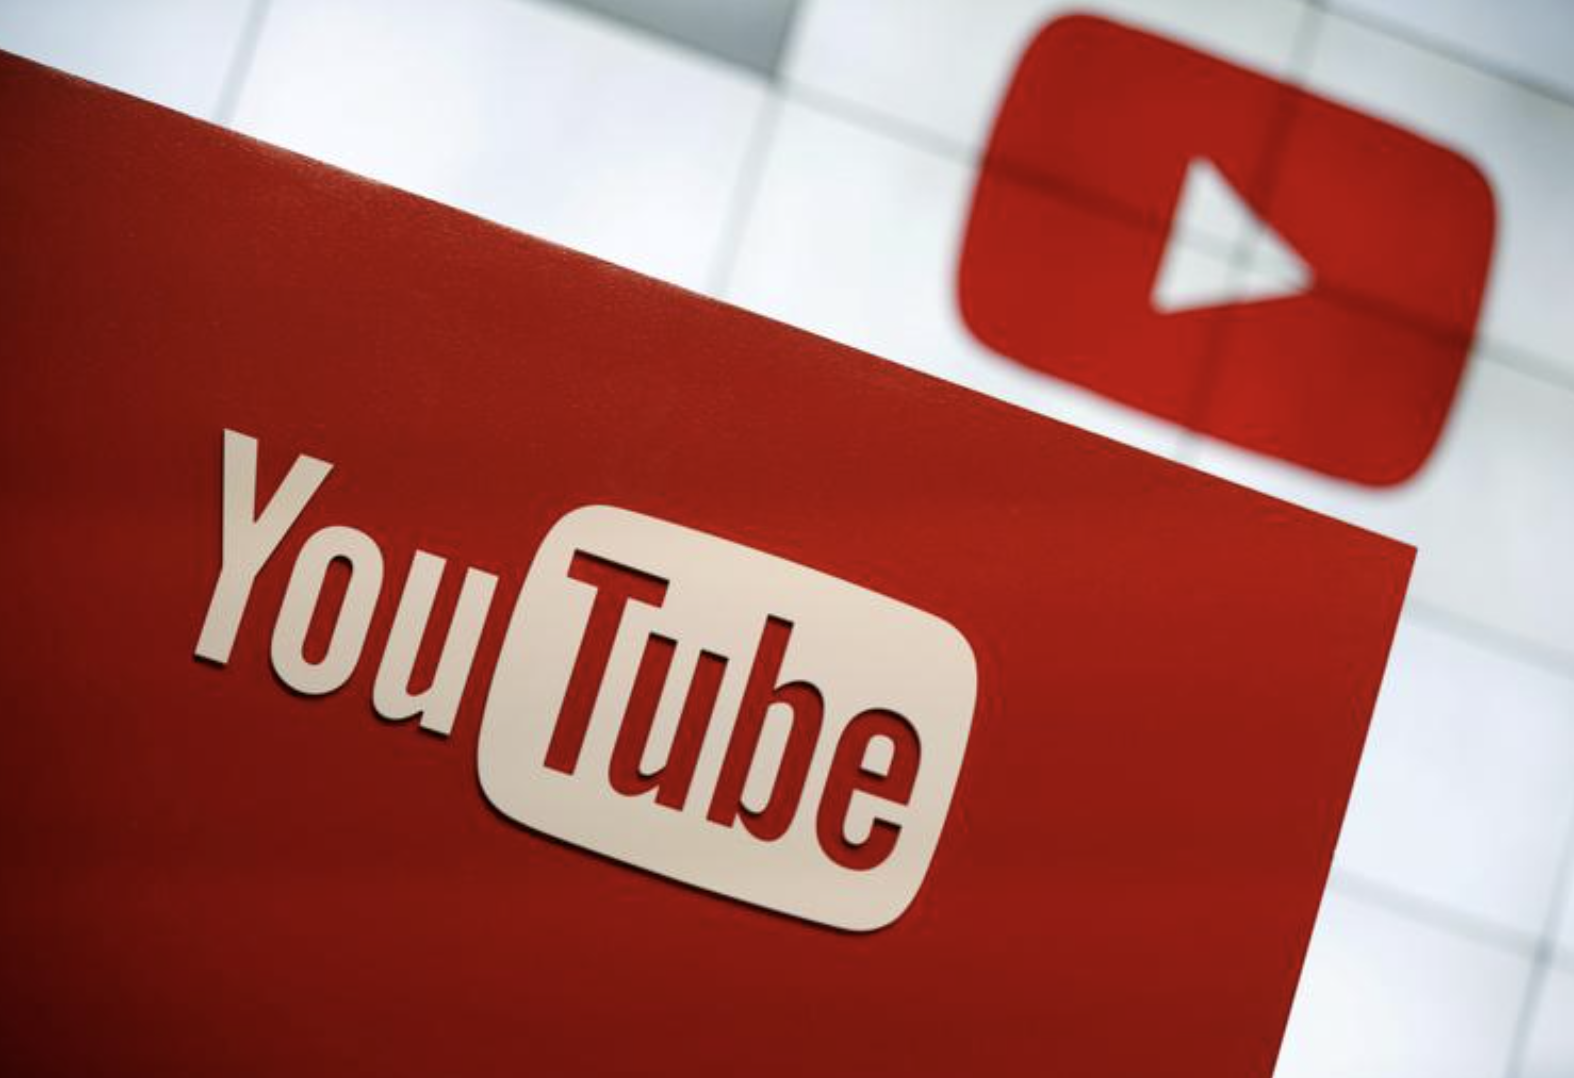 YouTube to roll out short-form video service in U.S. to take on TikTok